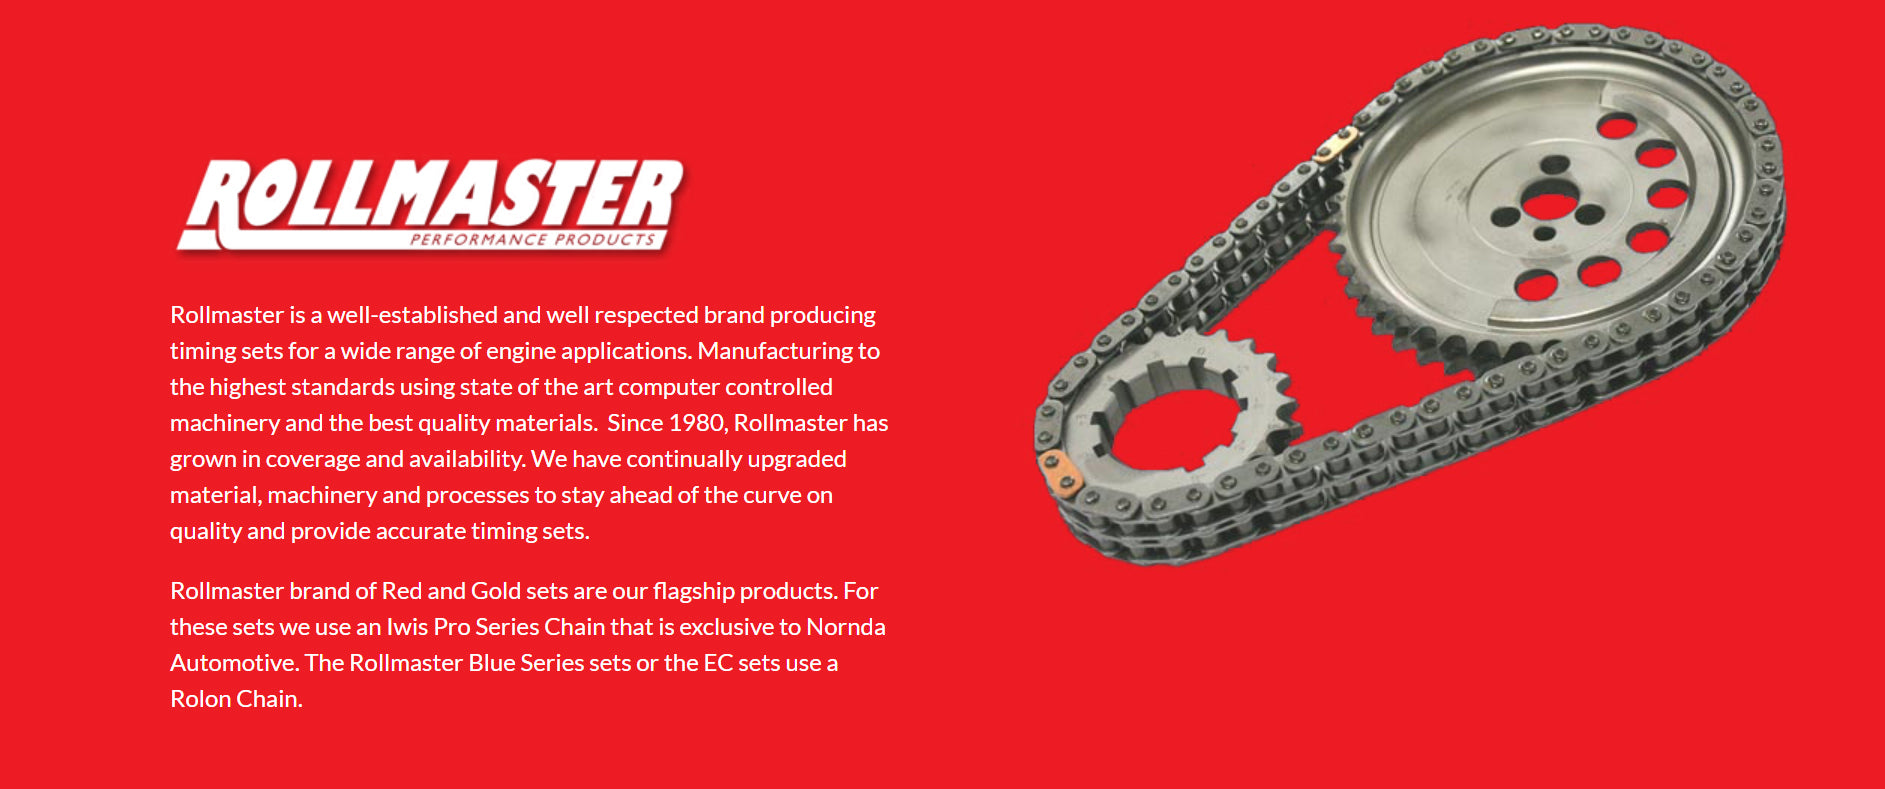 Rollmaster is a well-established and well respected brand producing timing sets for a wide range of engine applications. Manufacturing to the highest standards using state of the art computer controlled machinery and the best quality materials.  Since 1980, Rollmaster has grown in coverage and availability. We have continually upgraded material, machinery and processes to stay ahead of the curve on quality and provide accurate timing sets.  Rollmaster brand of Red and Gold sets are our flagship products. For these sets we use an Iwis Pro Series Chain that is exclusive to Nornda Automotive. The Rollmaster Blue Series sets or the EC sets use a Rolon Chain.